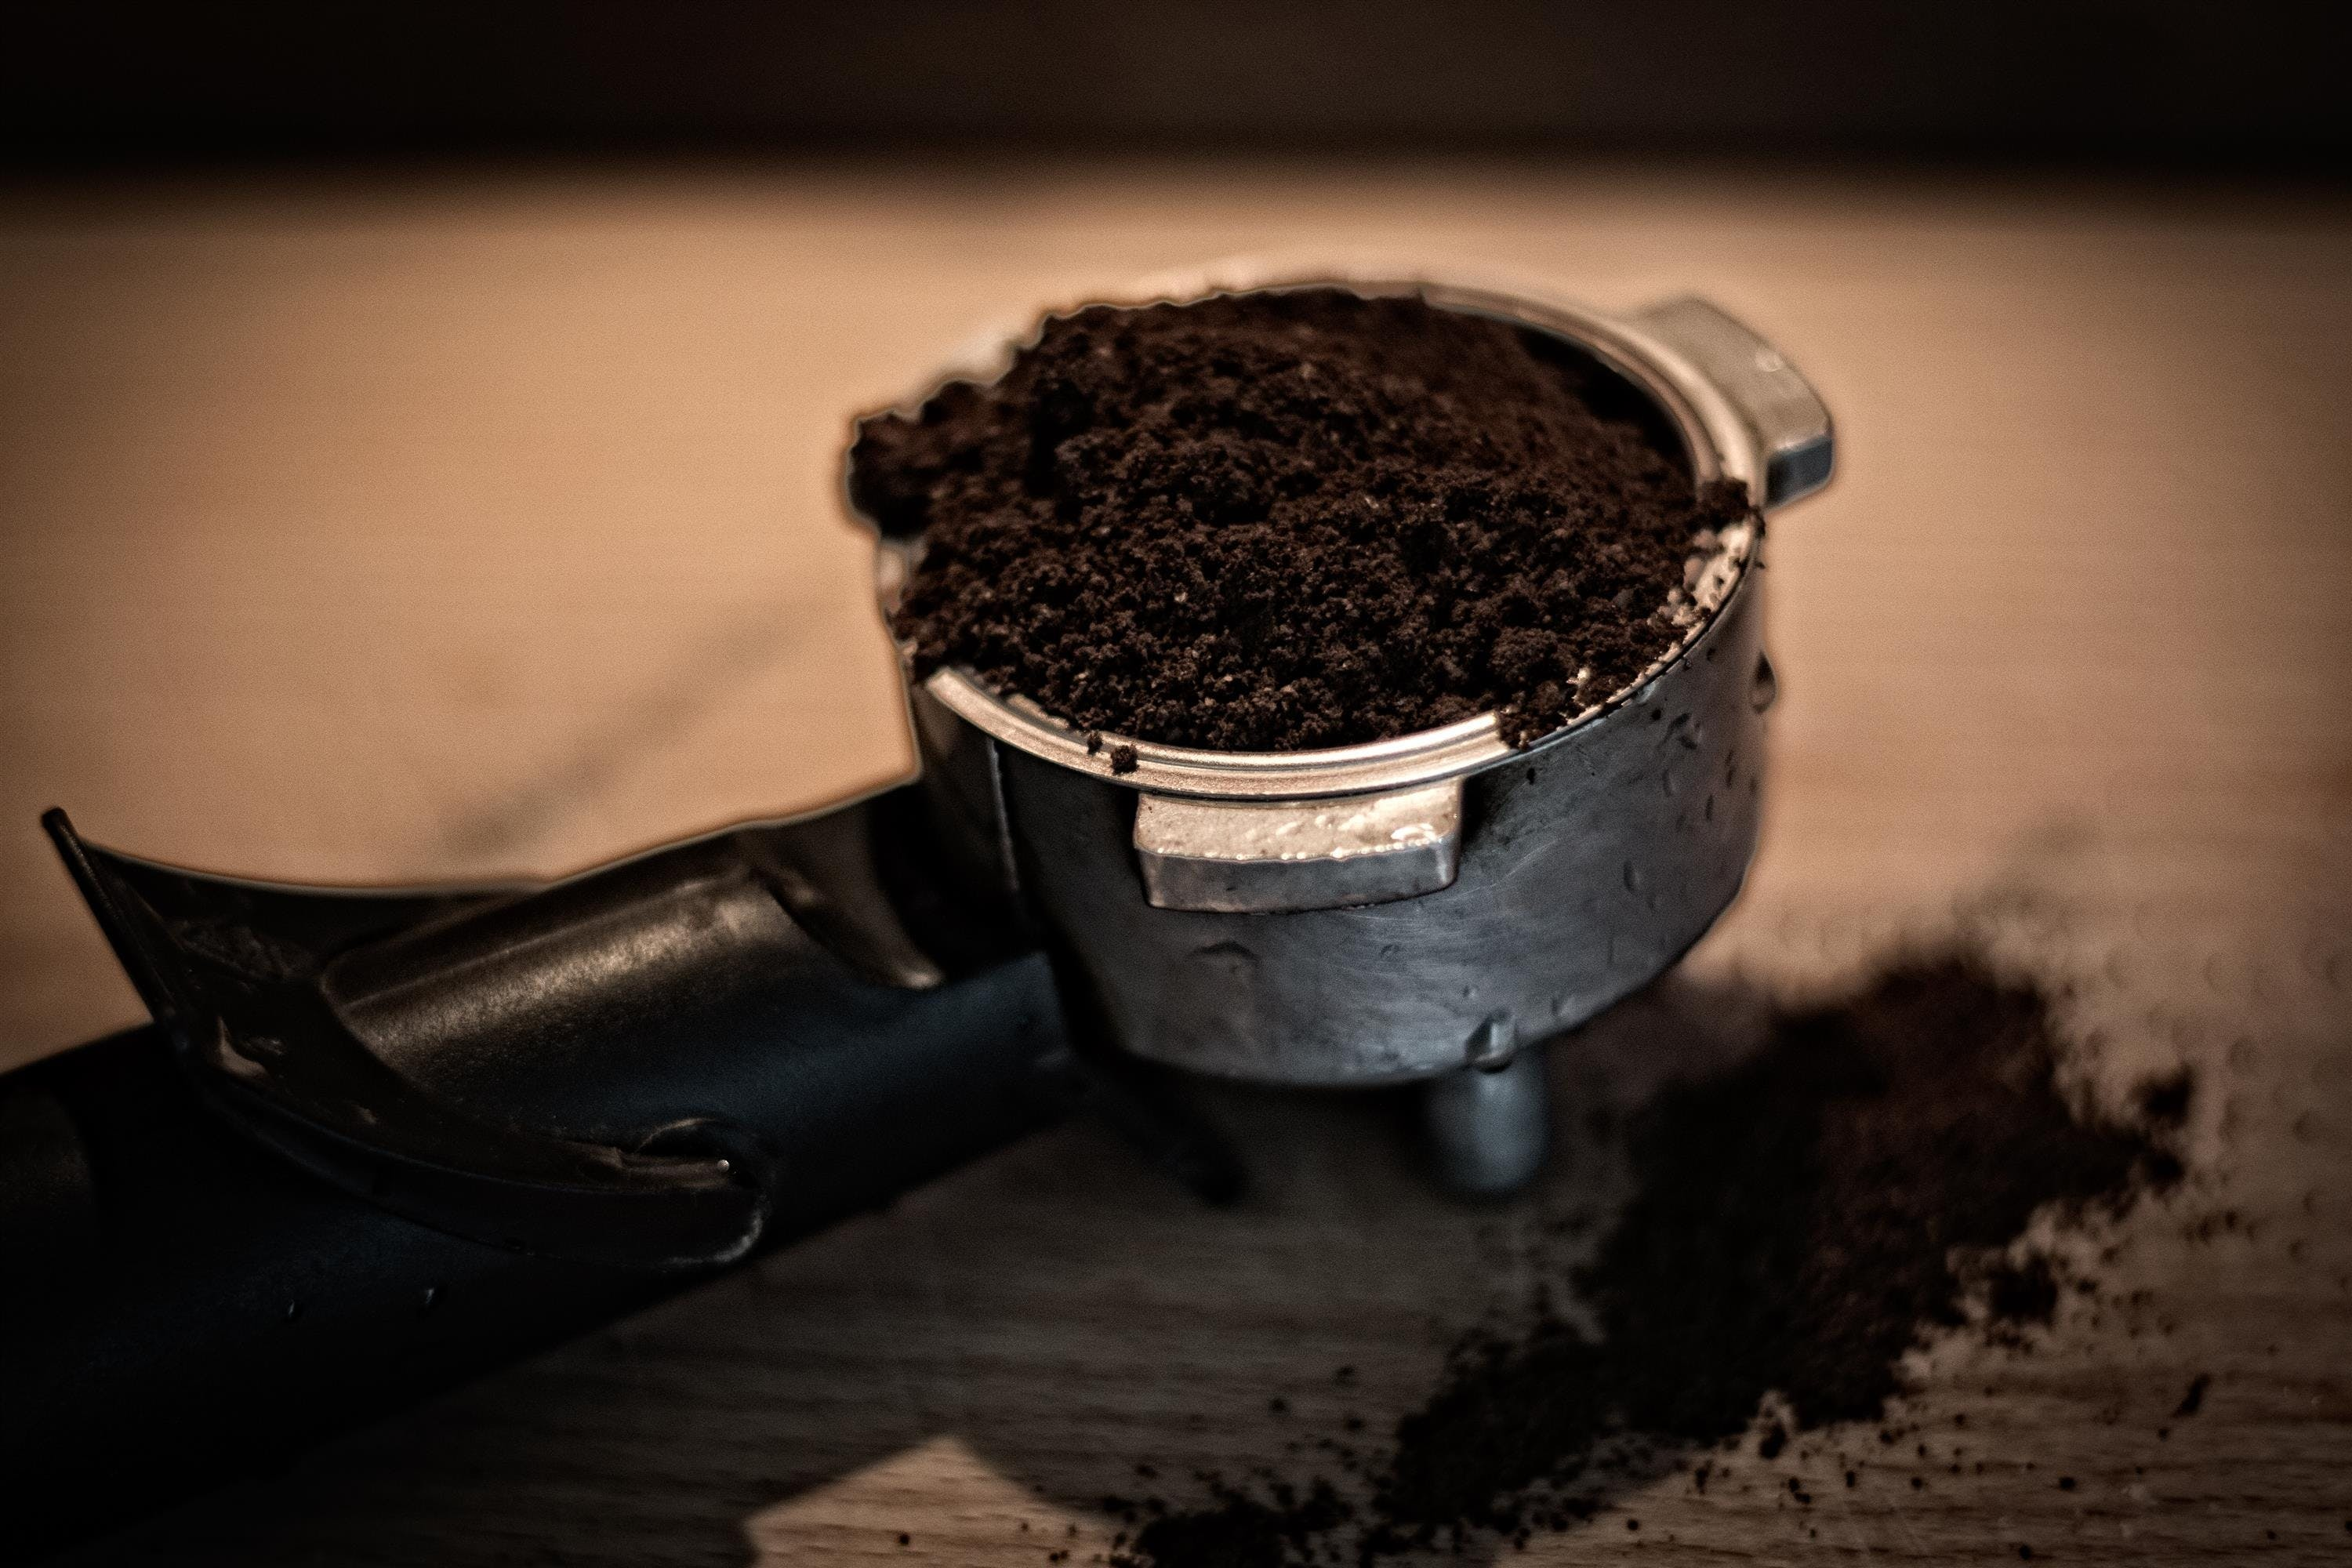 Grey and Black Coffee Cup Filled With Grind Coffee